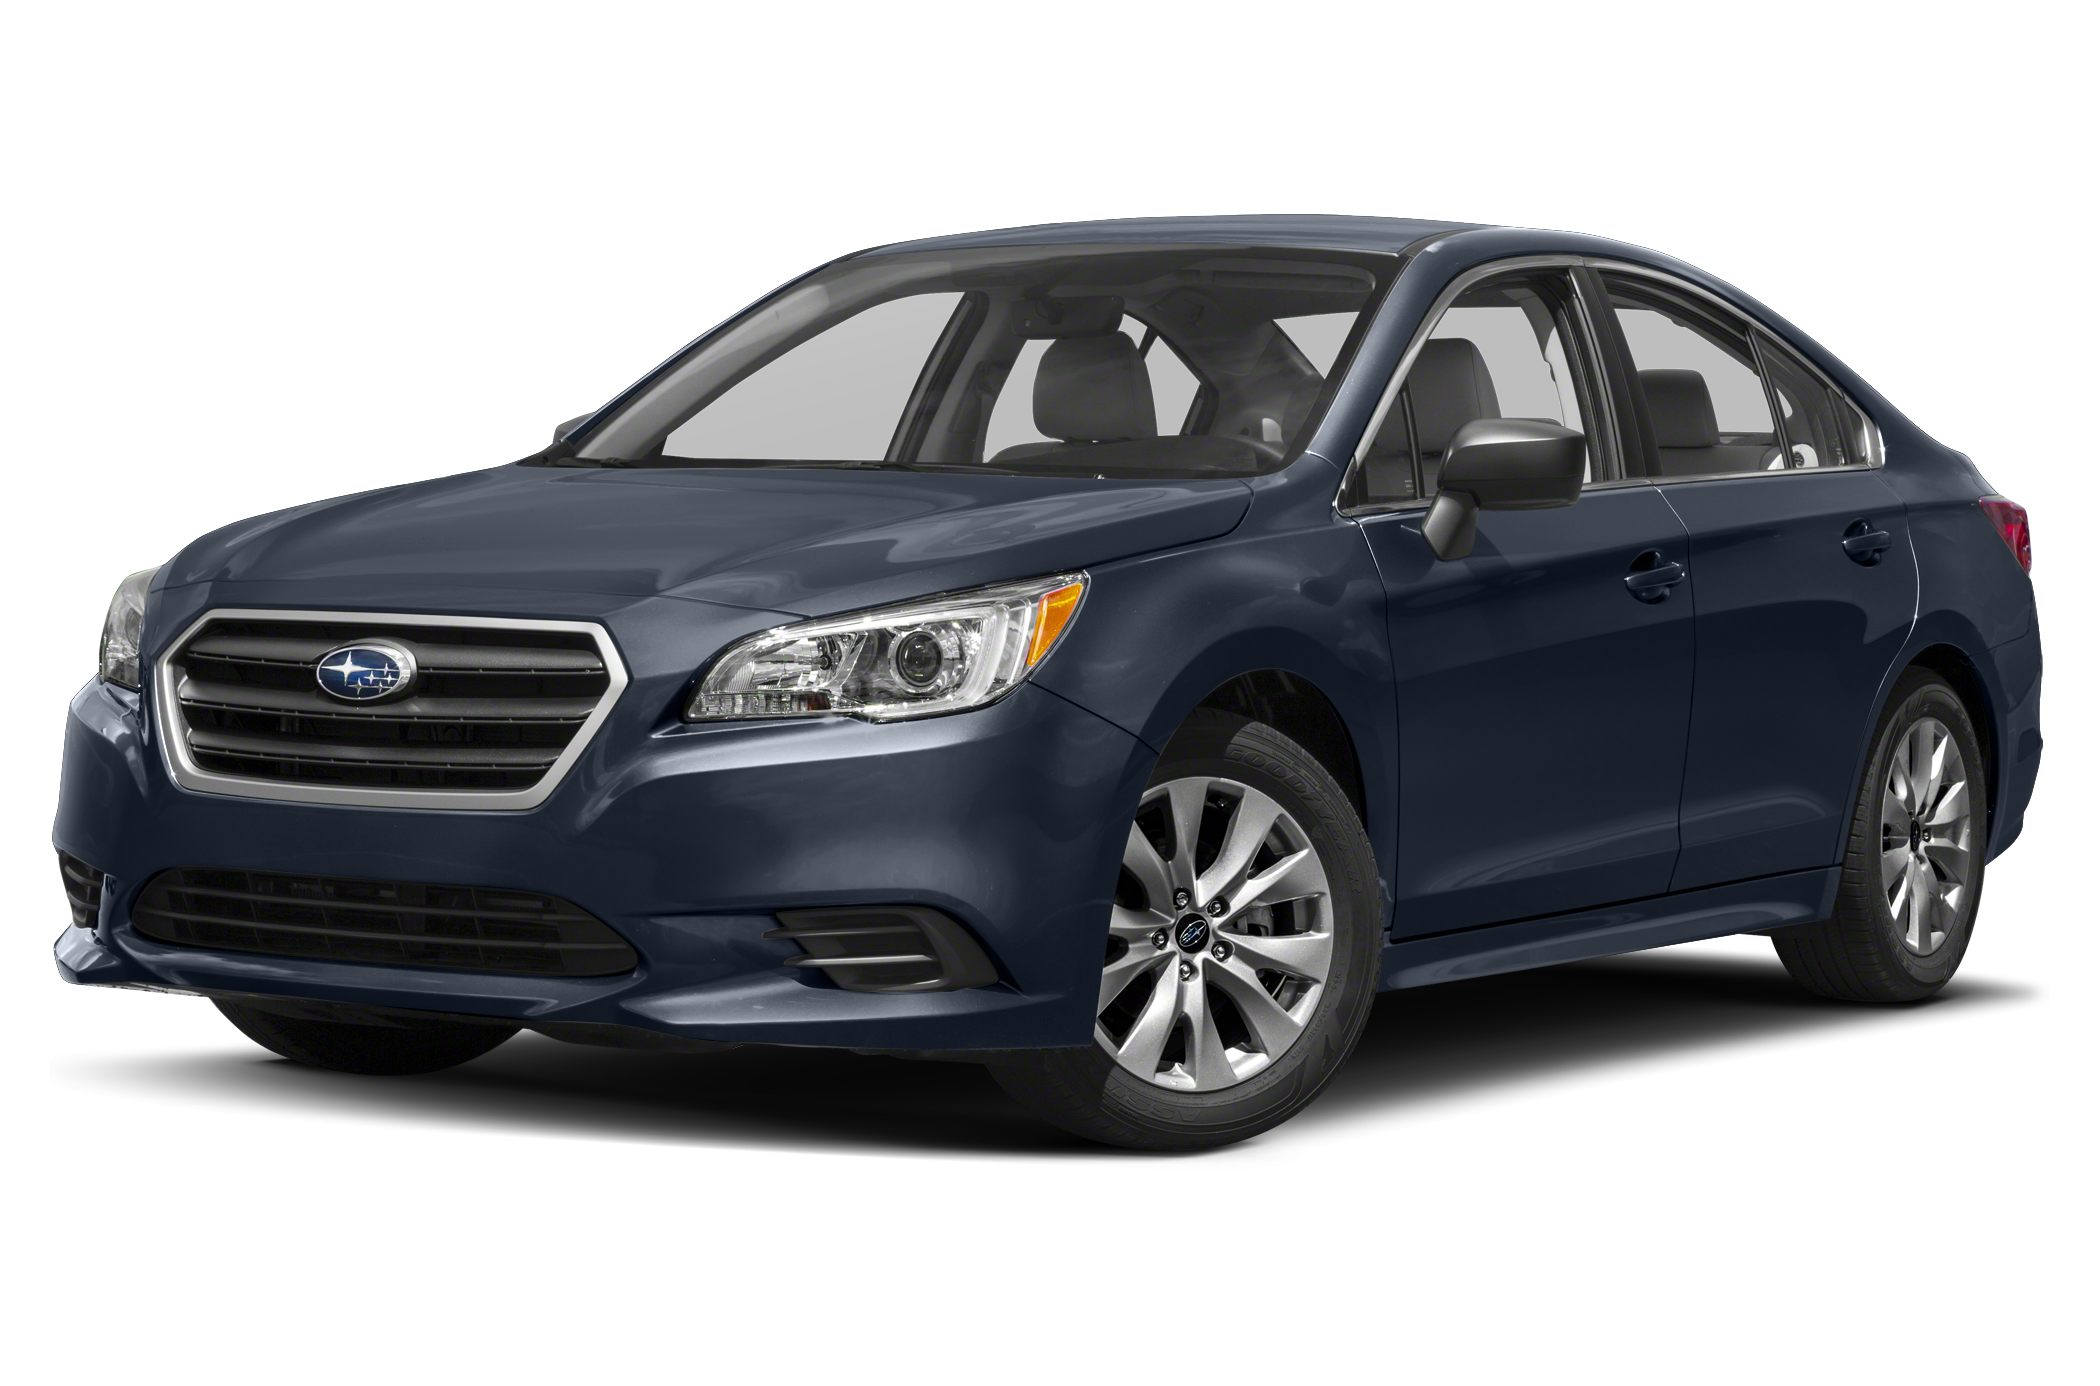 2018 subaru legacy deals prices incentives leases overview carsdirect. Black Bedroom Furniture Sets. Home Design Ideas